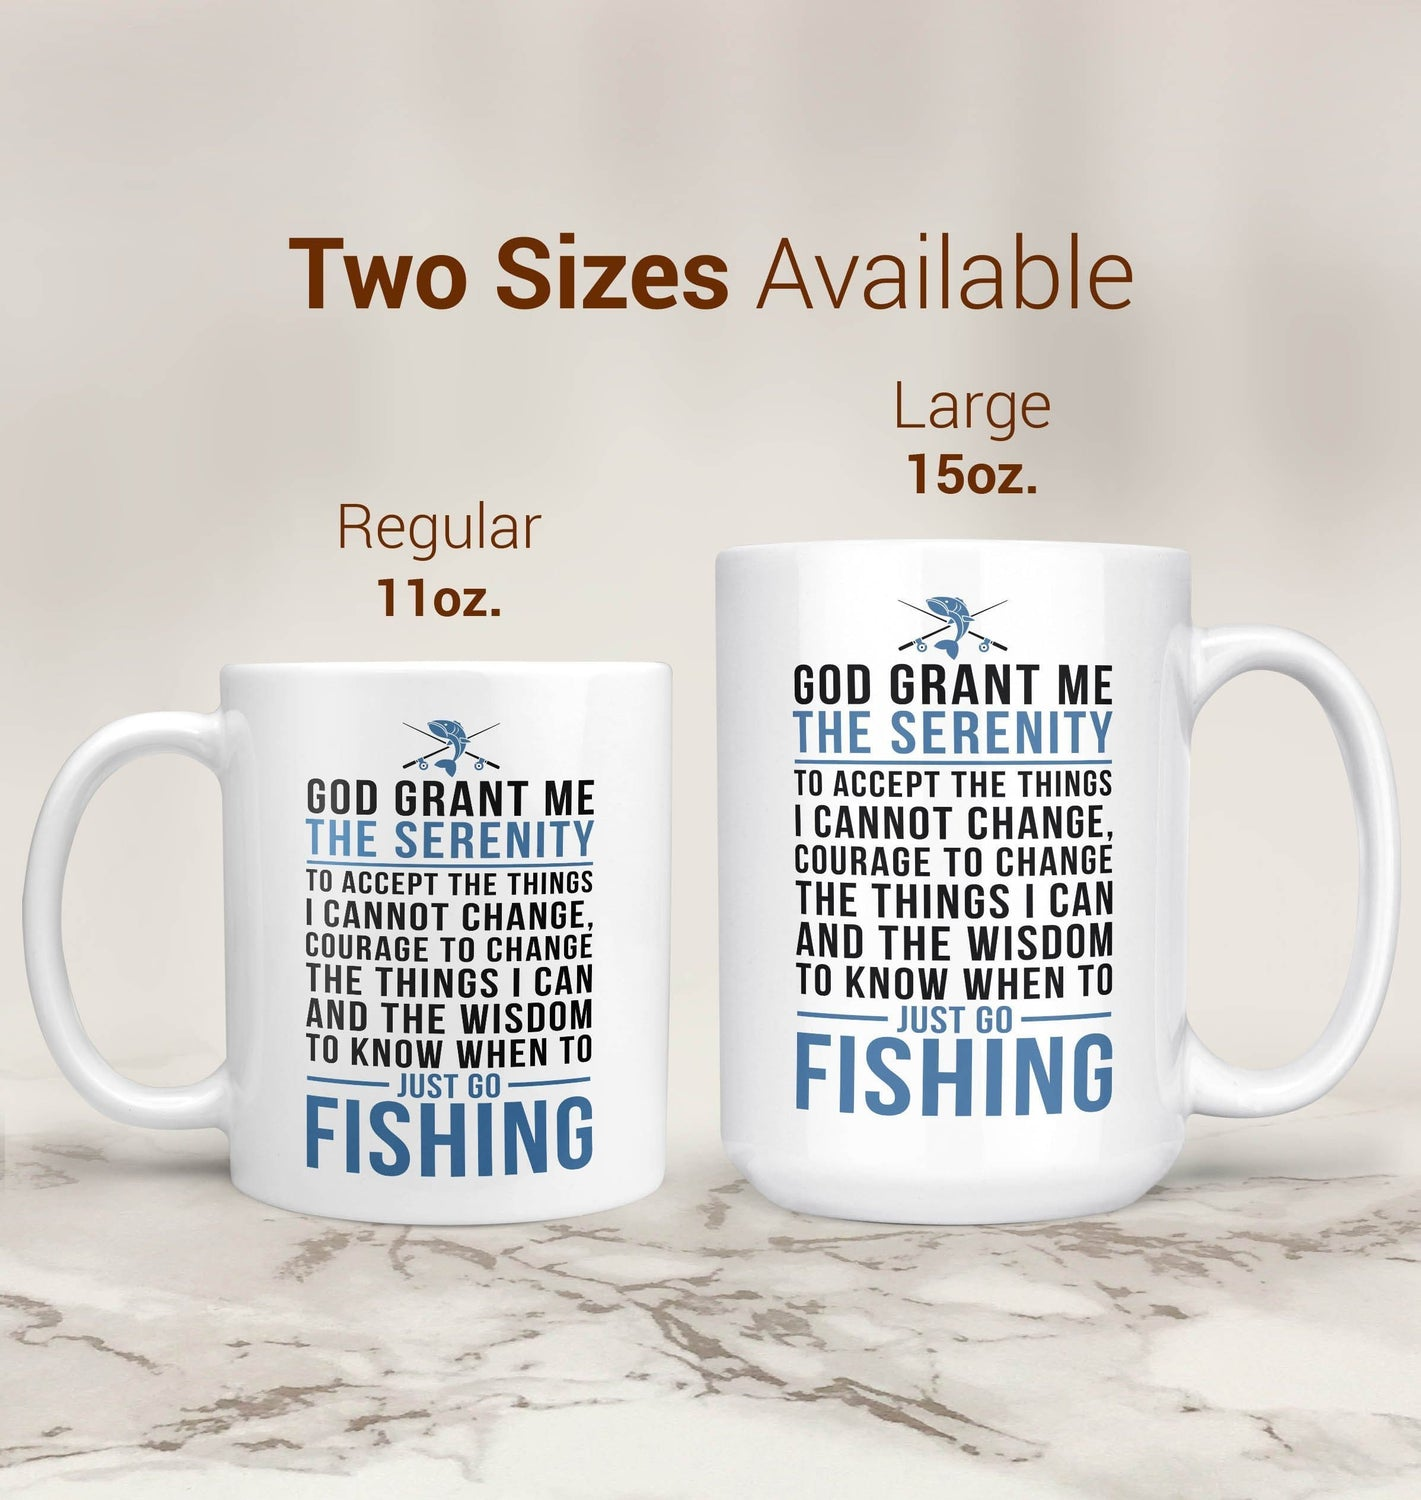 God Grant Me Serenity To Just Go Fishing Coffee Mug Tea Cup